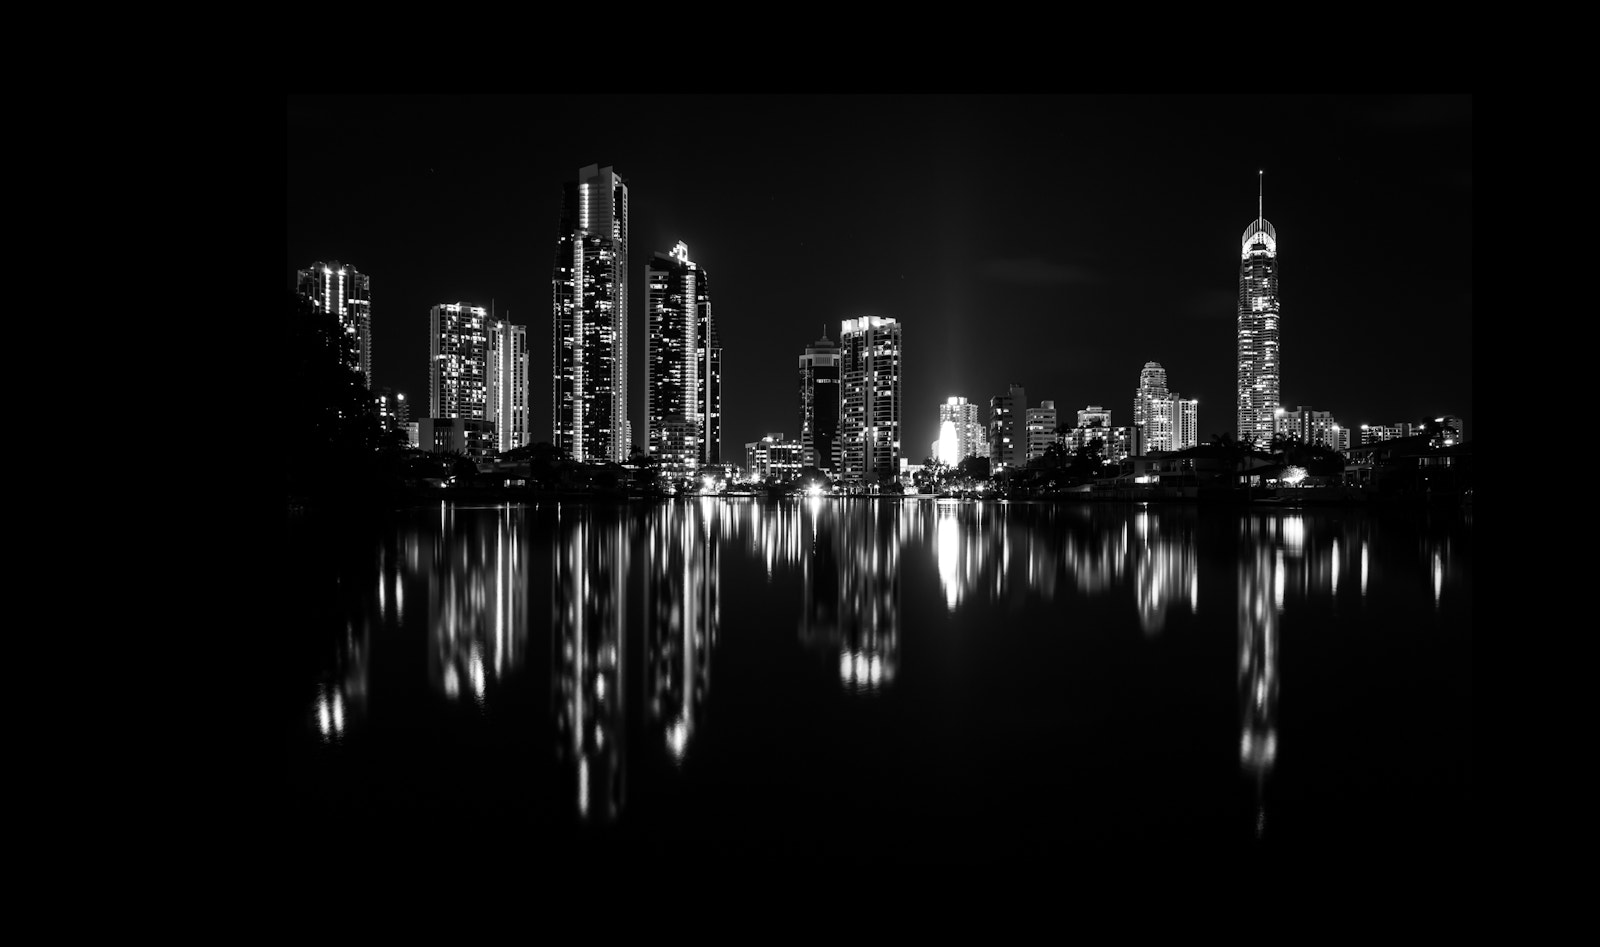 Photograph In the dark by Daniel Treadwell on 500px